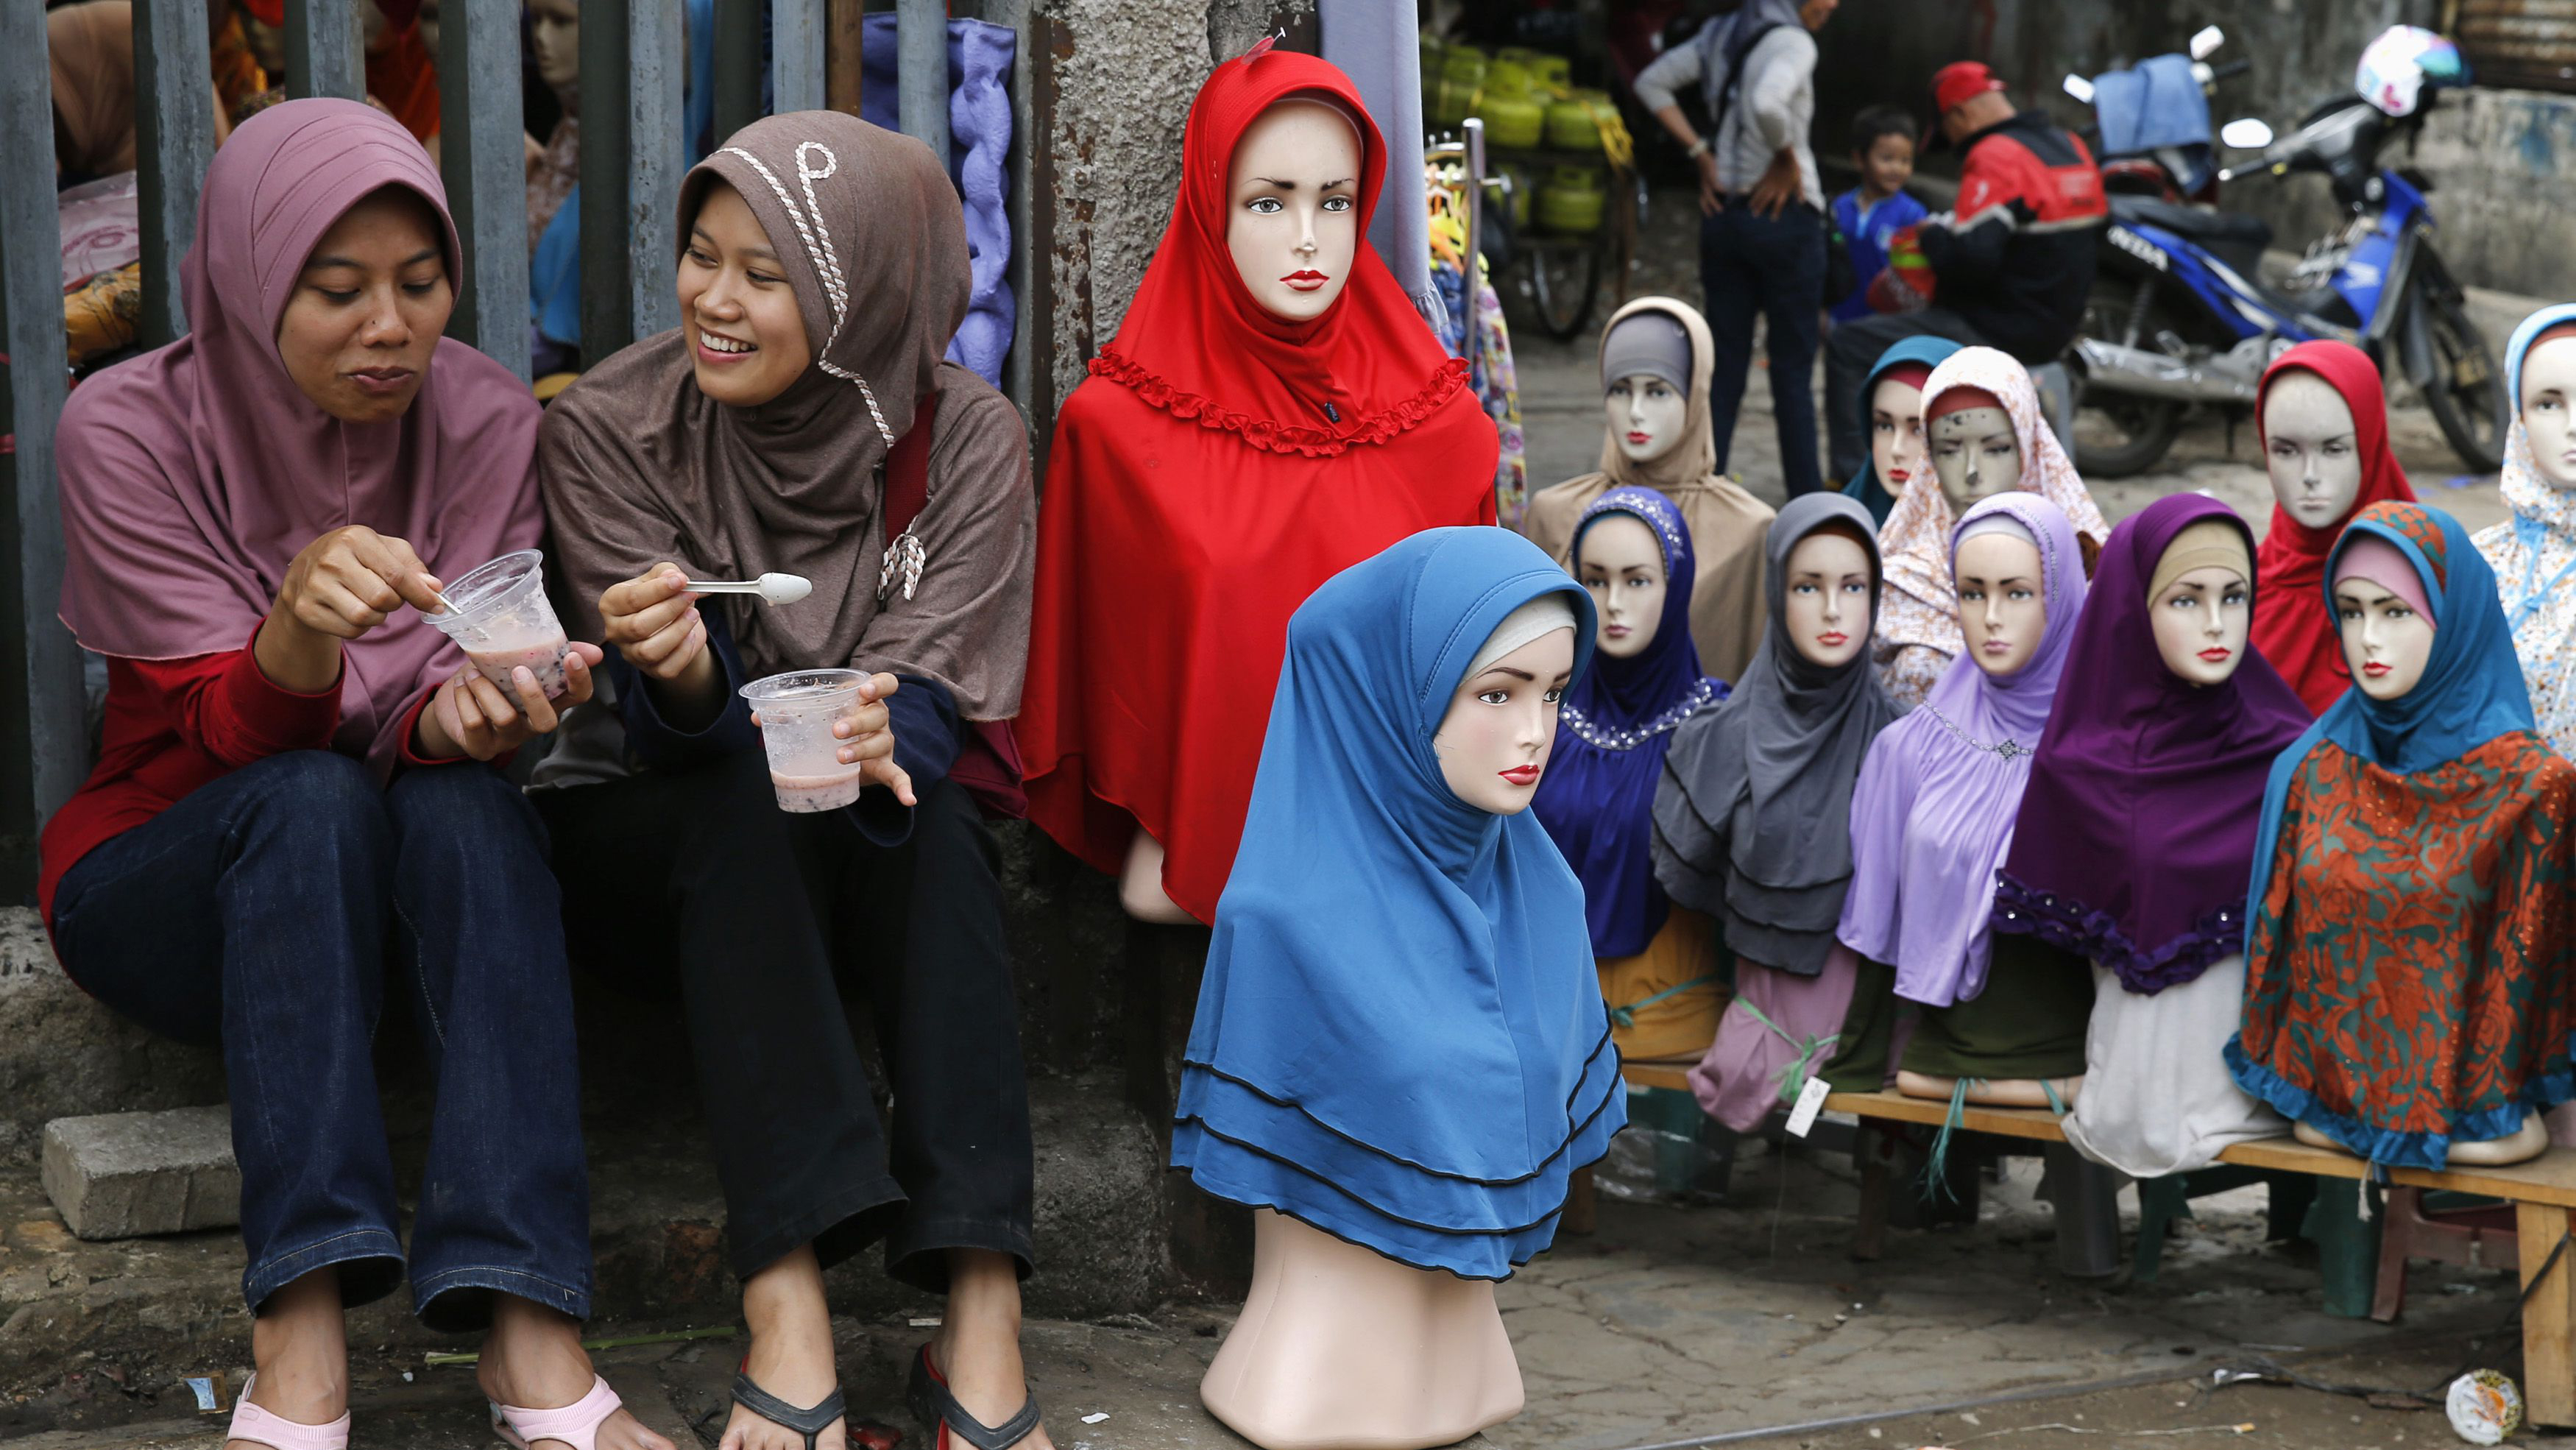 Girls sit near mannequins displaying hijabs for sale at Tanah Abang market, ahead of the holy fasting month of Ramadan, in Jakarta June 27, 2014. REUTERS/Beawiharta (INDONESIA - Tags: RELIGION BUSINESS SOCIETY TPX IMAGES OF THE DAY)